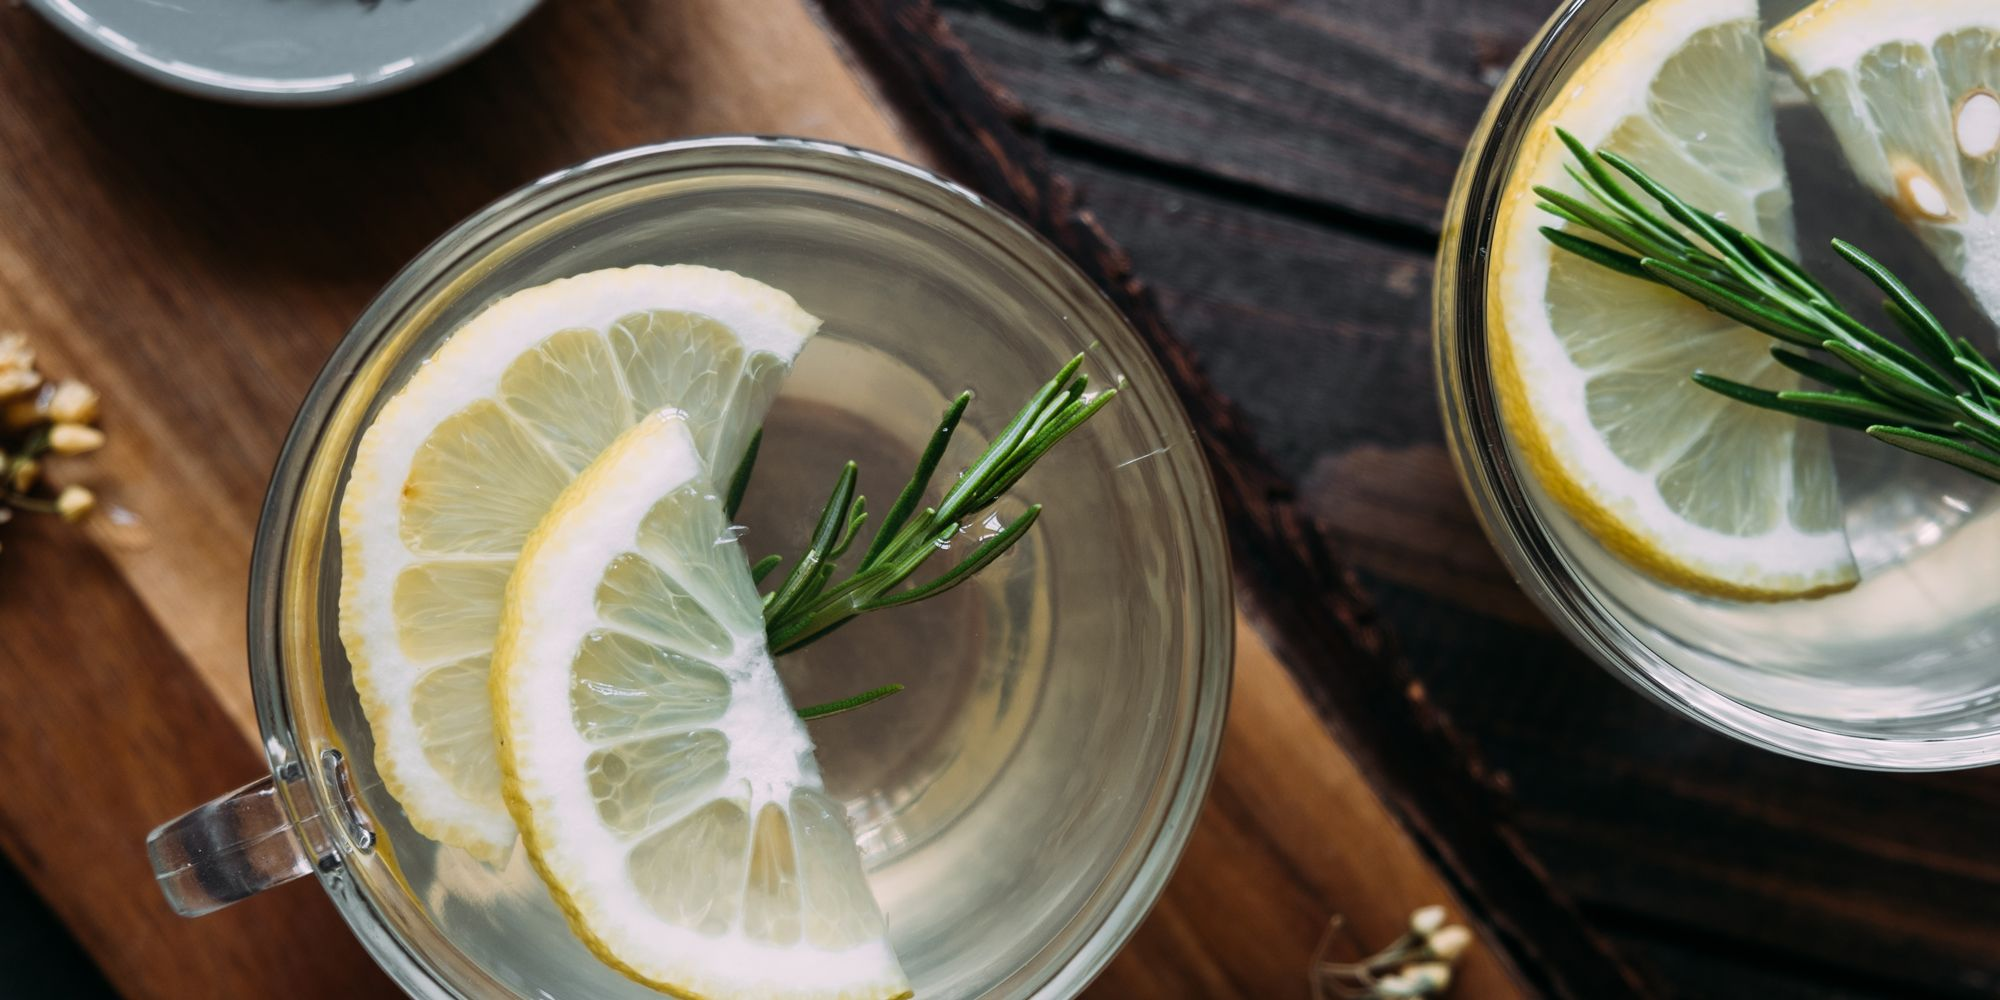 Swap Your Morning Coffee for a Cup of Brain-Boosting Rosemary Tea